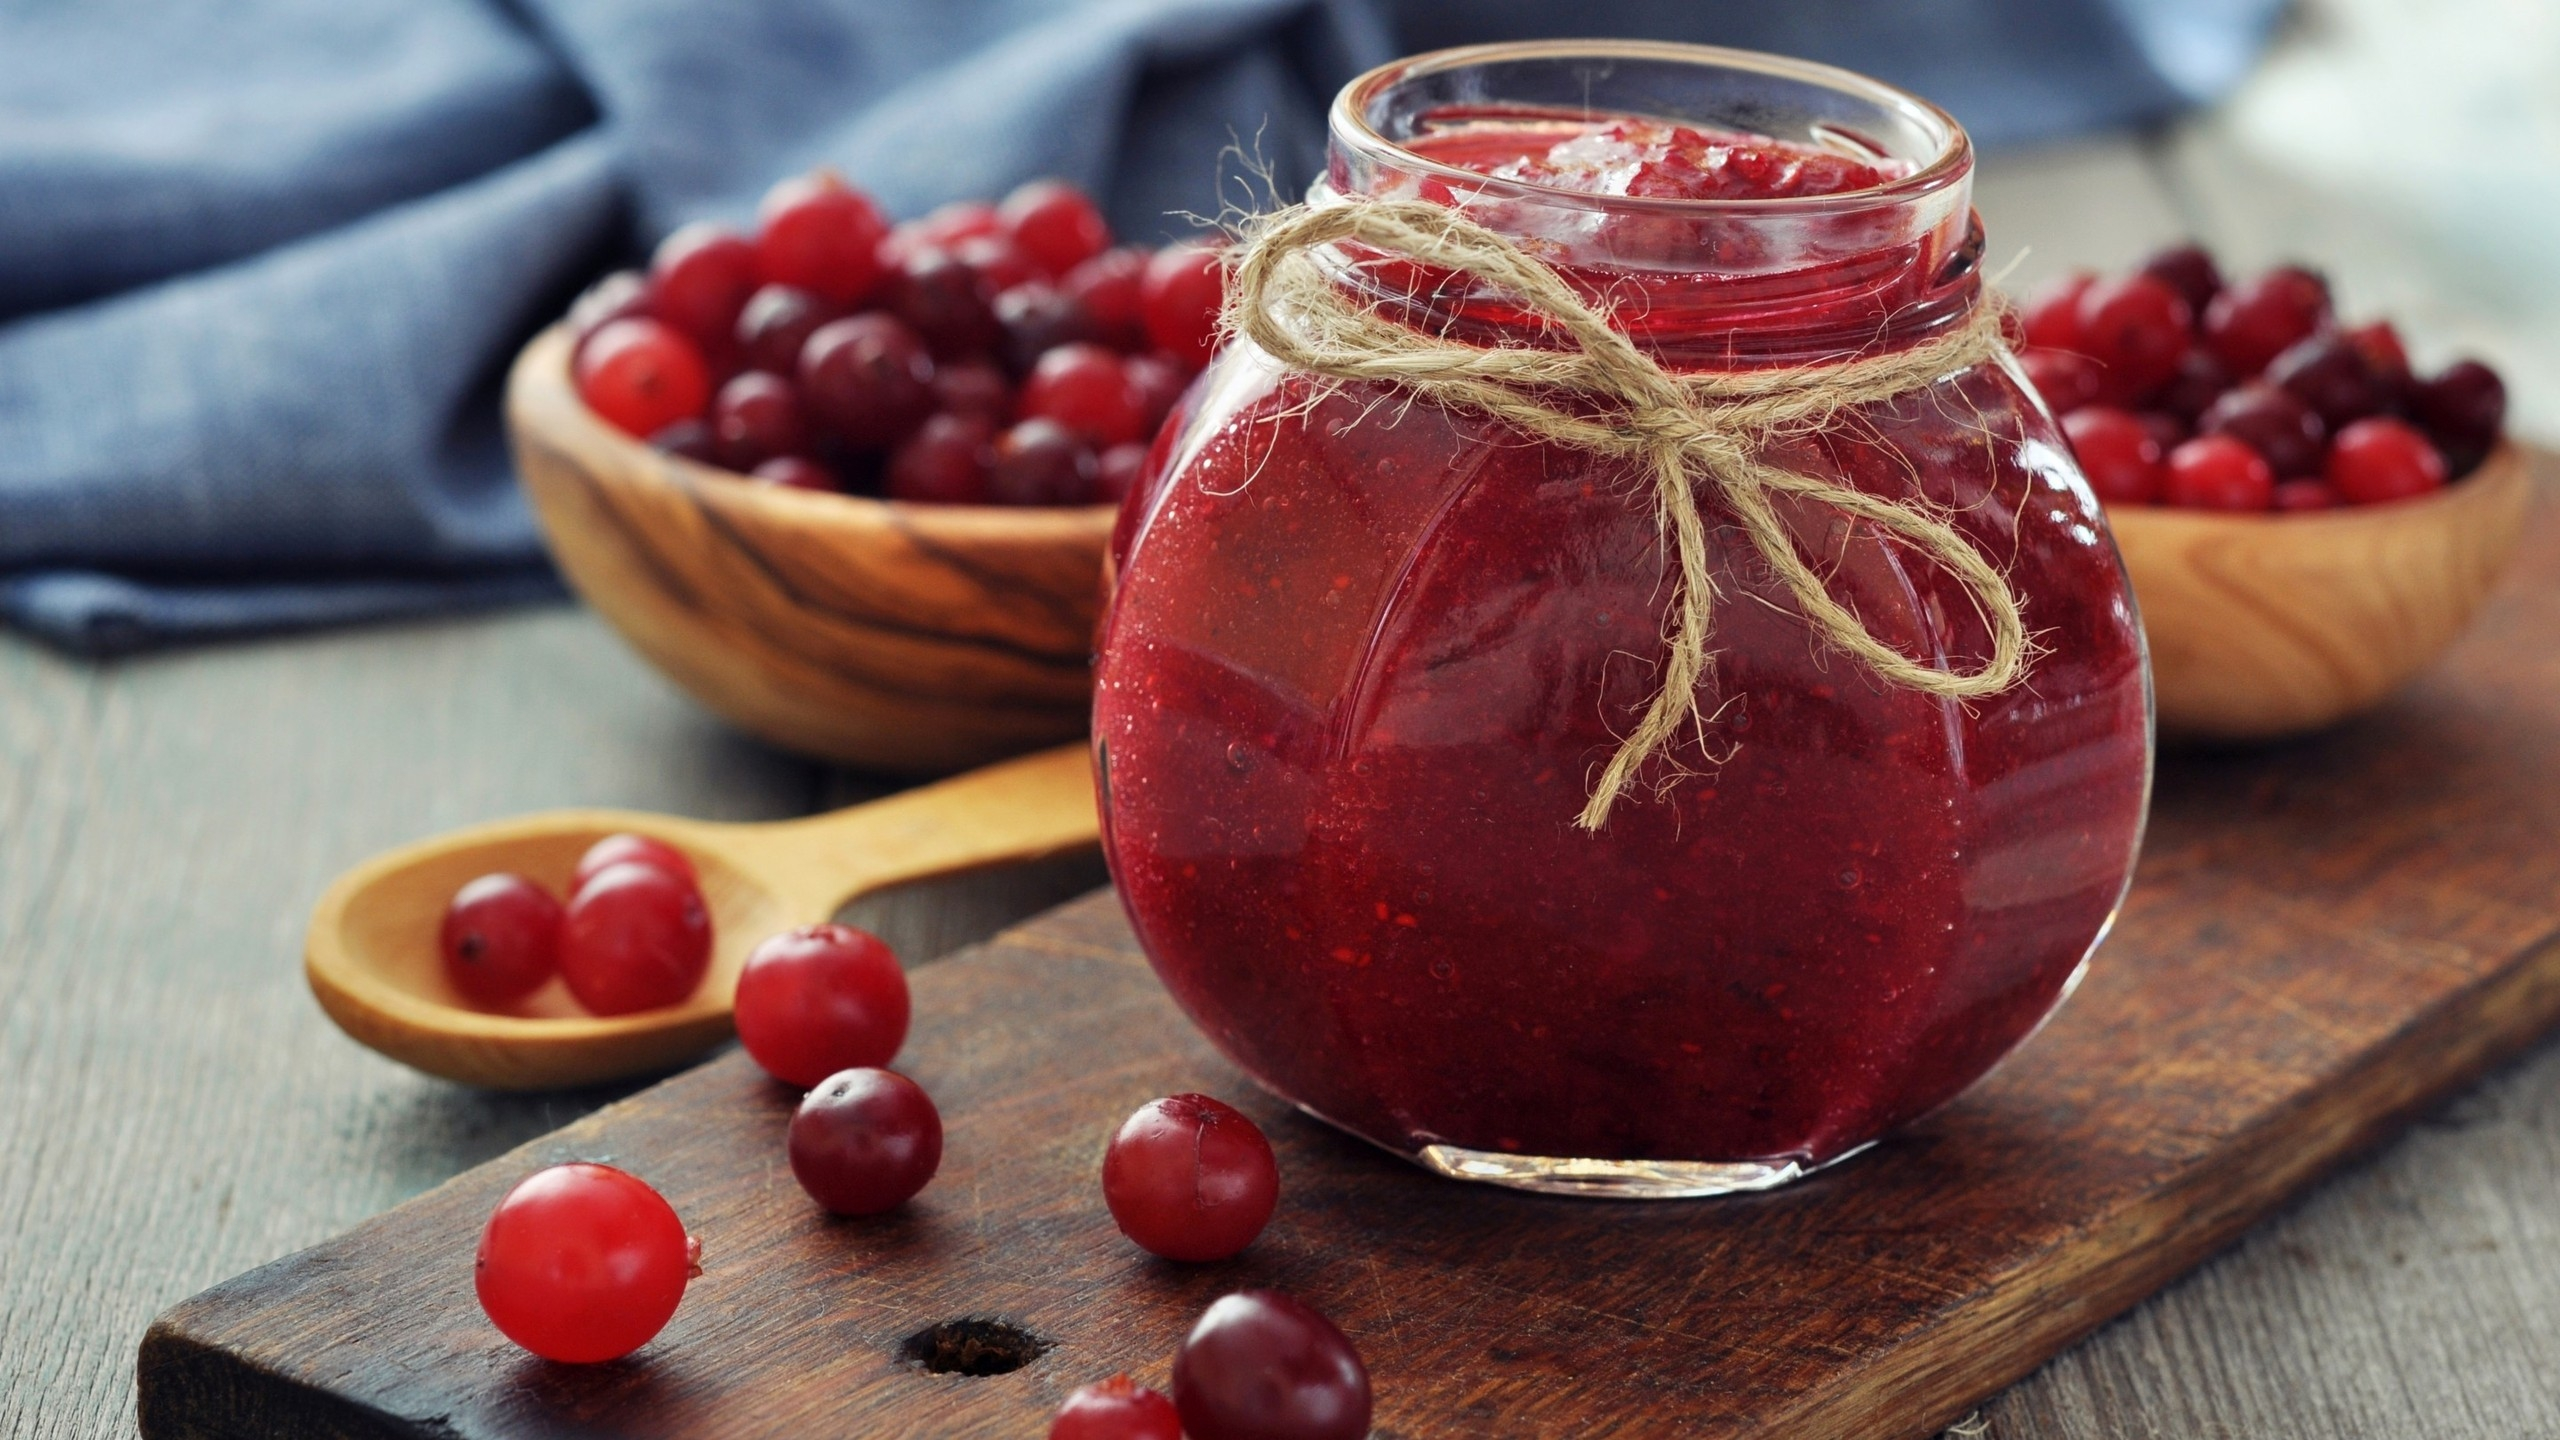 Cranberries Jam Jar for 2560x1440 HDTV resolution